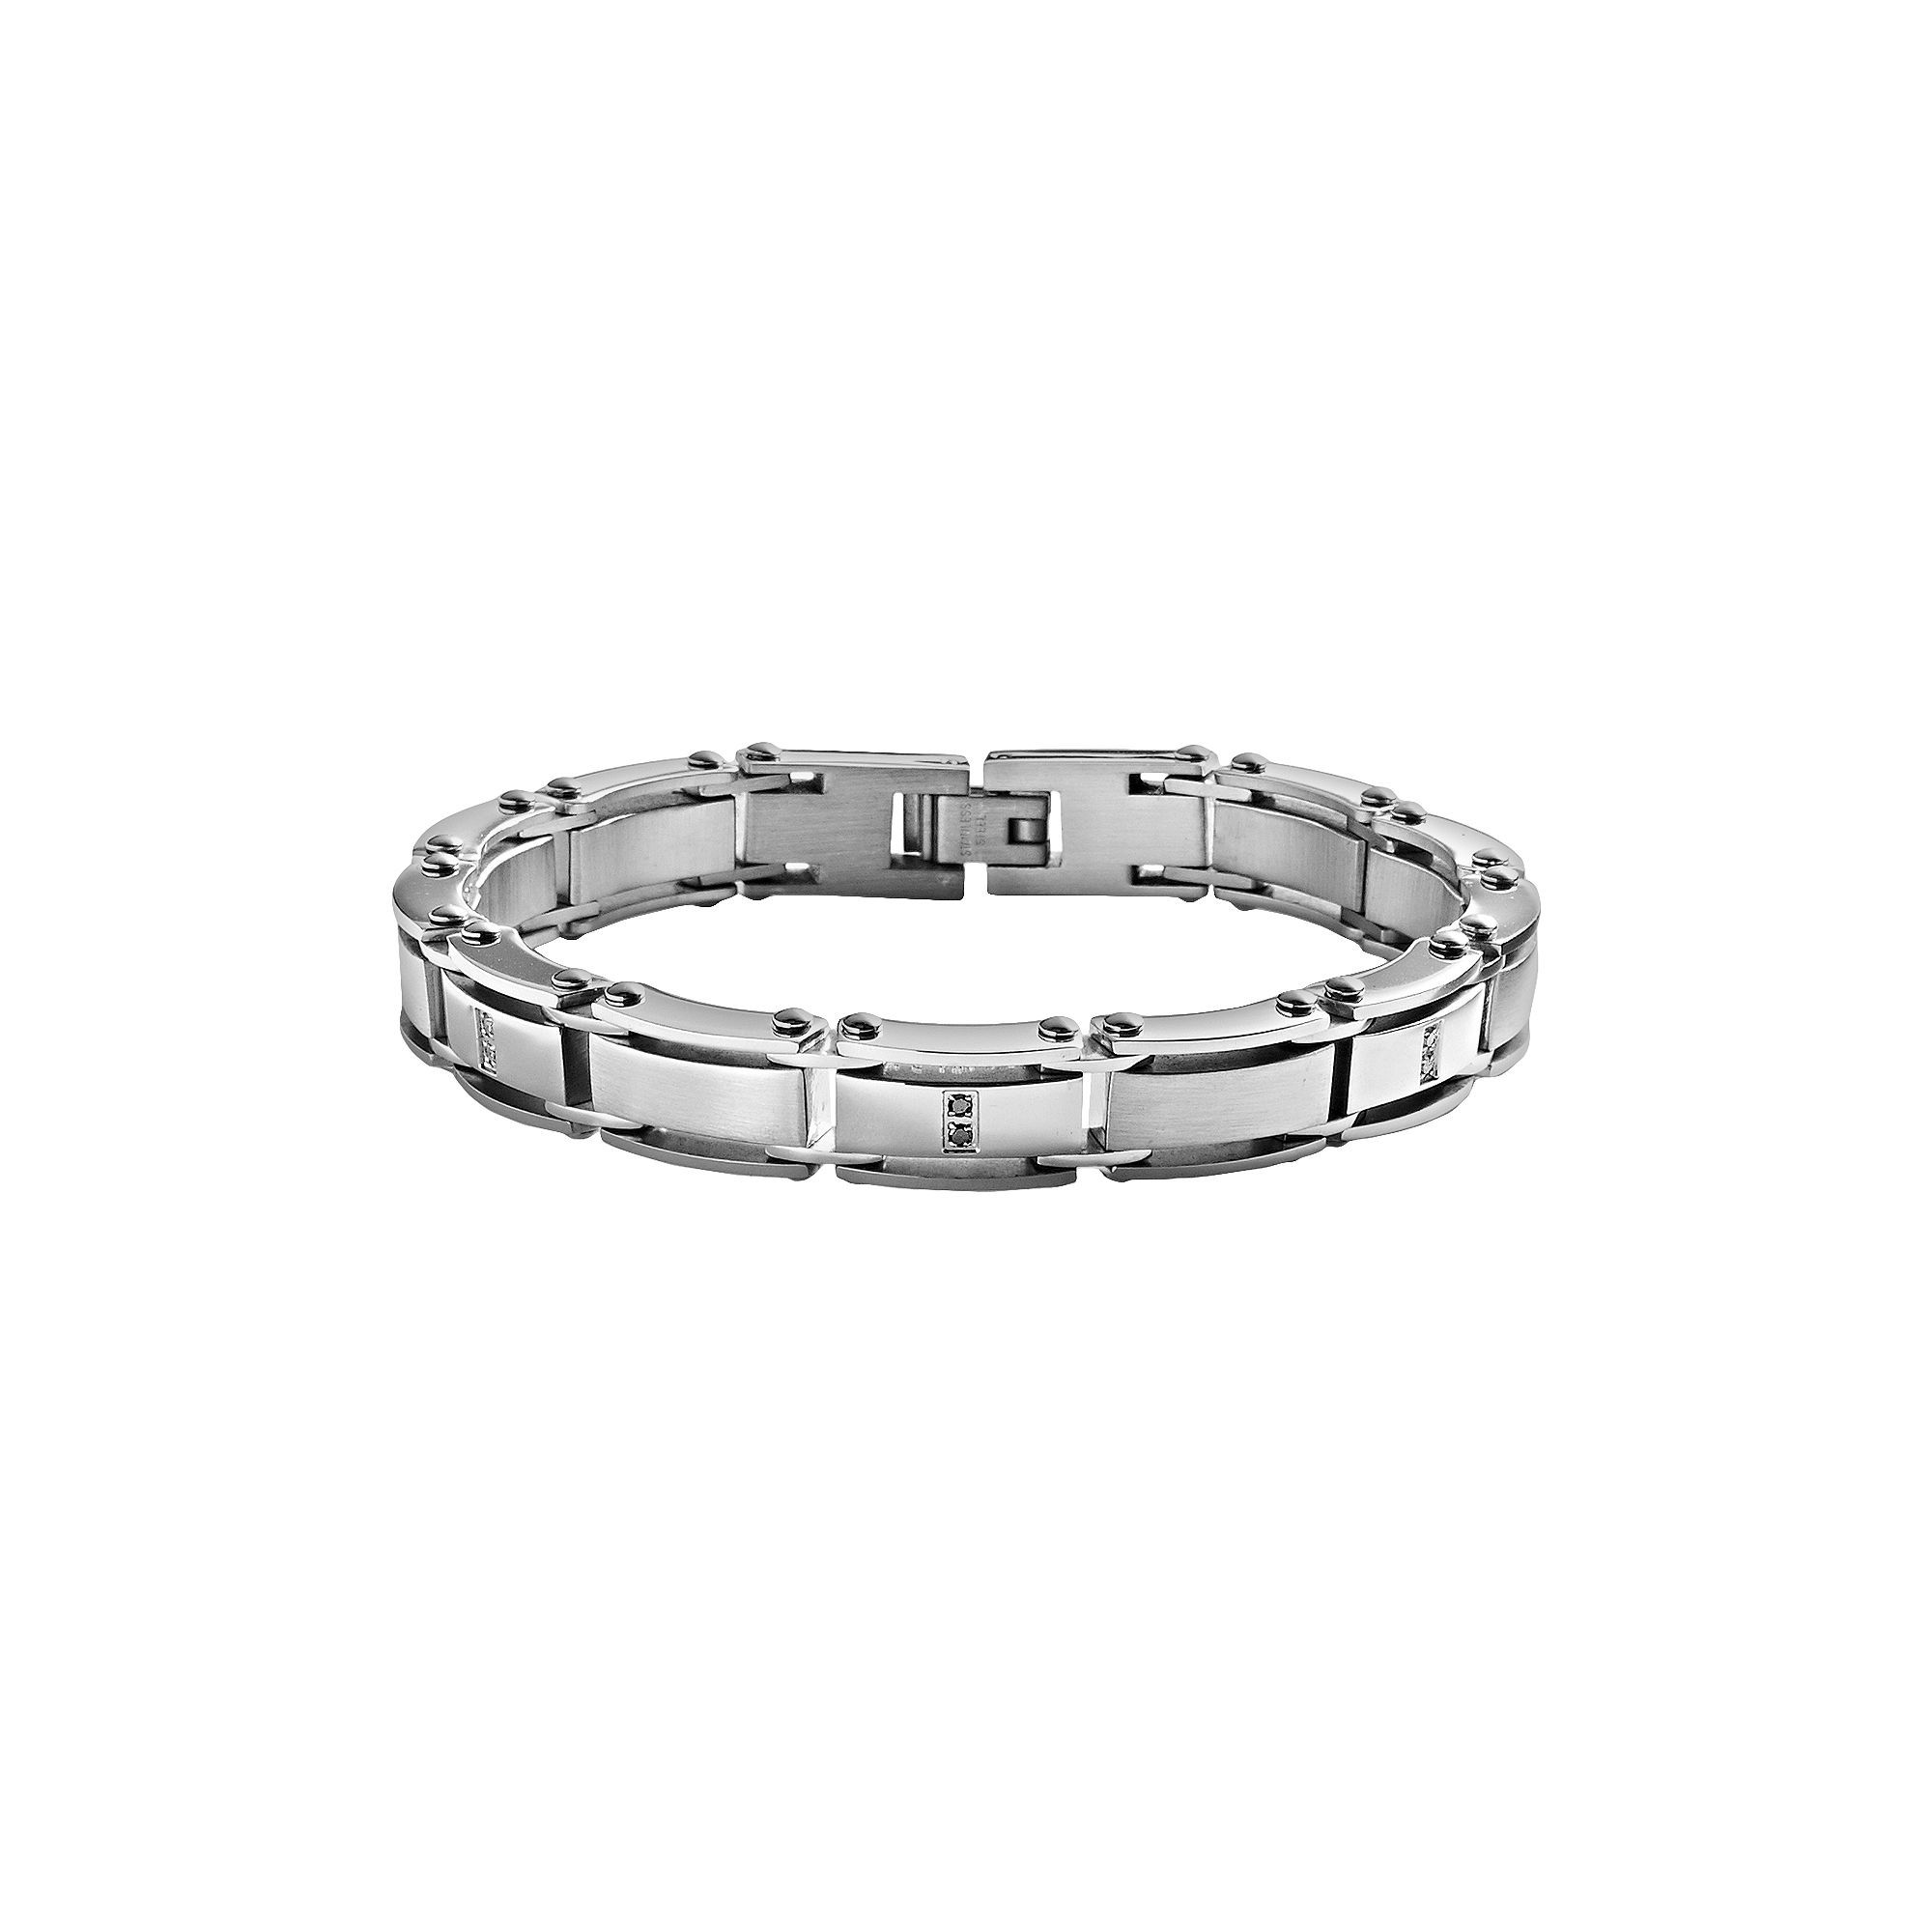 jewellery carat bracelet diamondland black jewelry diamond